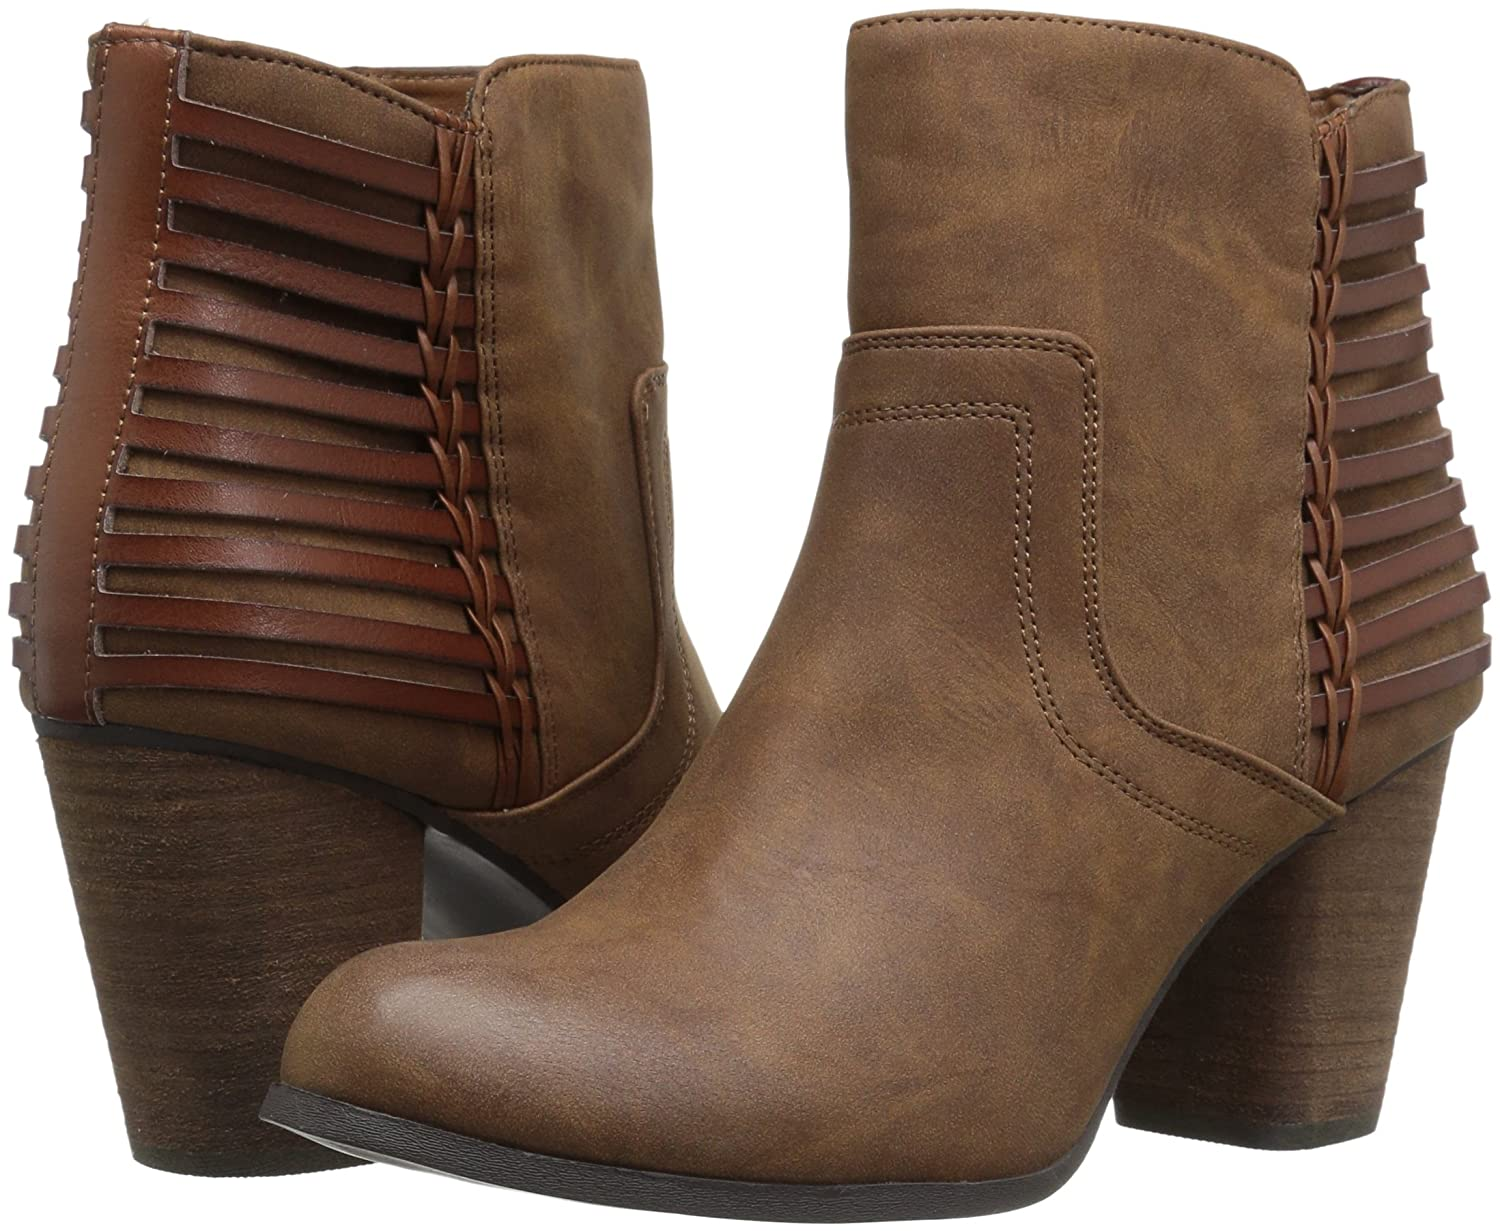 Madden Girl Women's B(M) Dusk Ankle Boot B005AVCP8O 7.5 B(M) Women's US|Cognac Paris 6d58cc